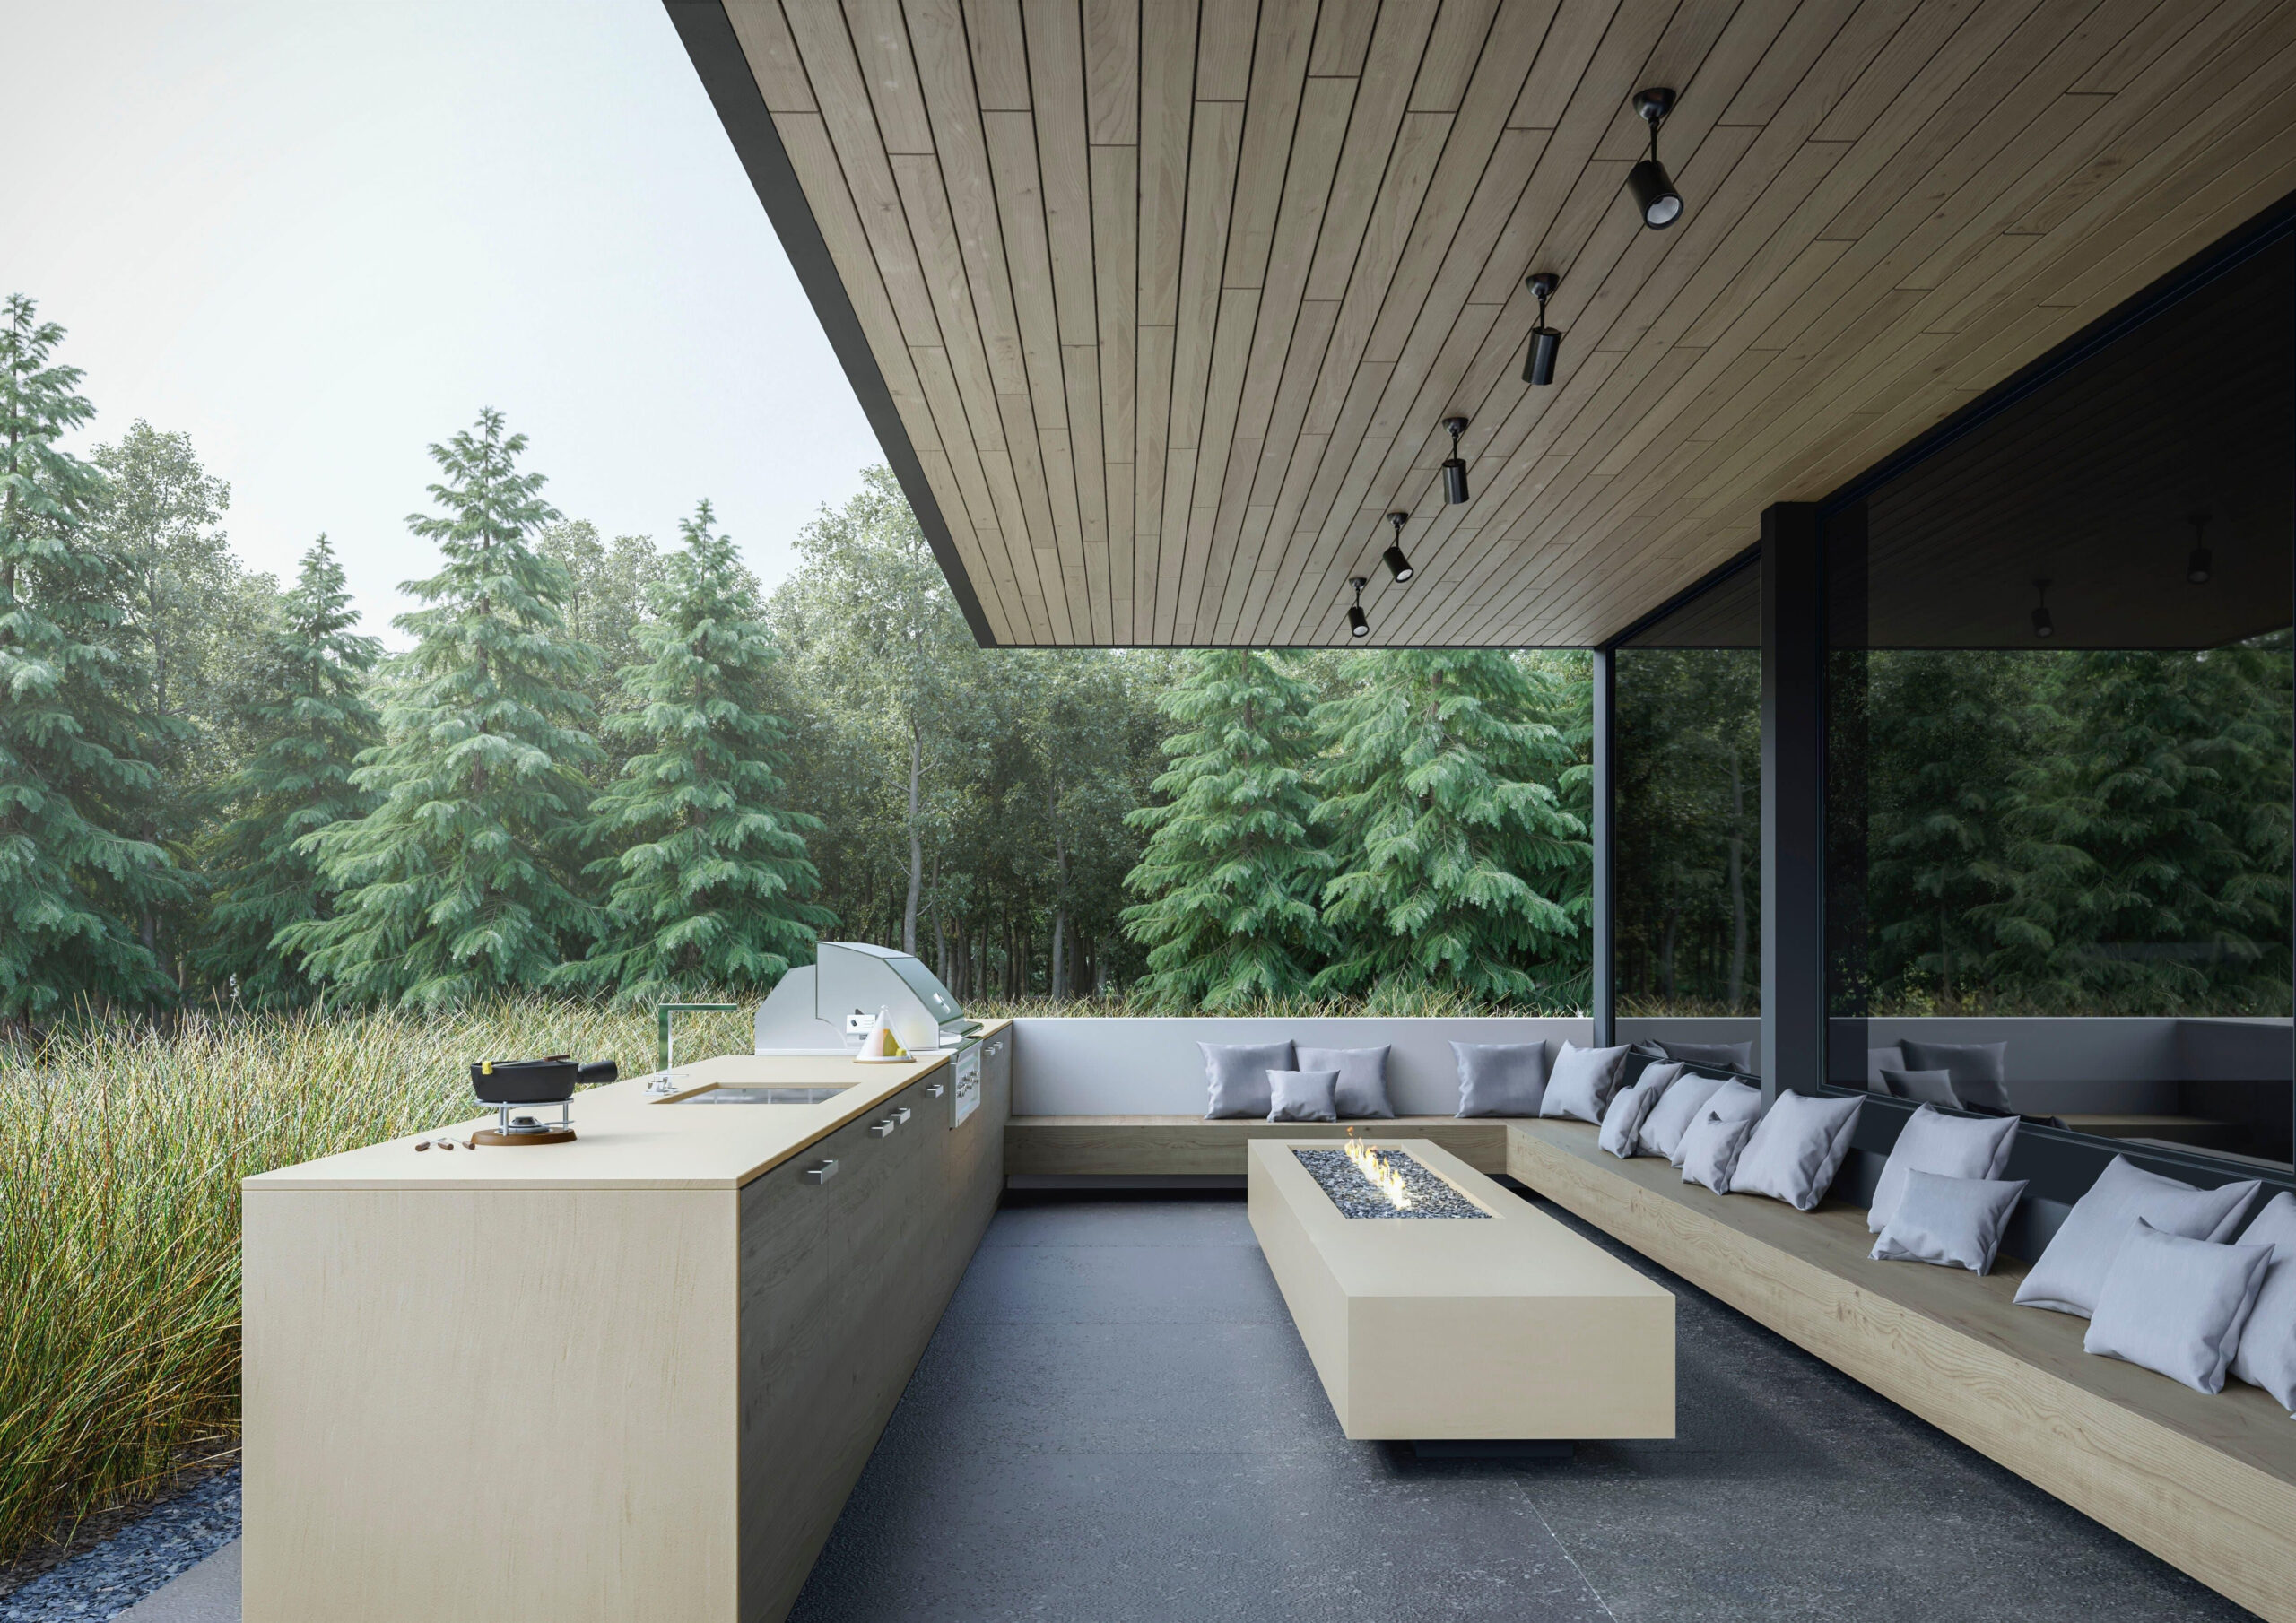 Latest AIA Survey Shows Strong Wellness Design And Home Safety Trends